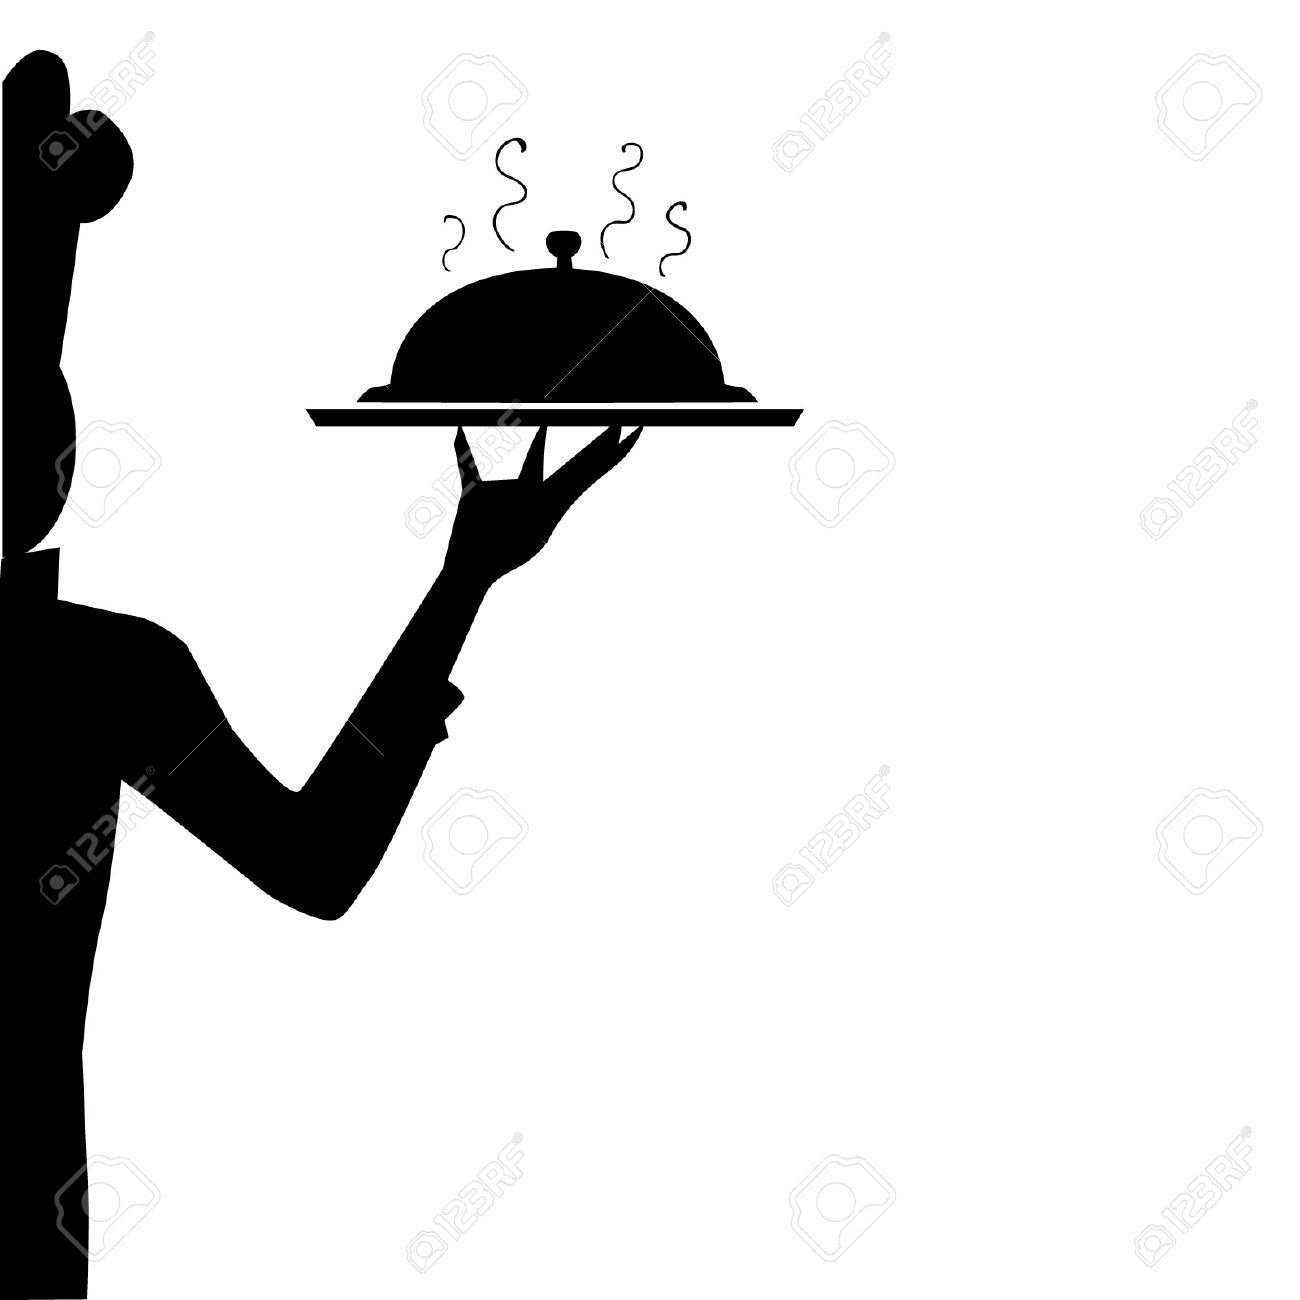 chef silhouette royalty free cliparts vectors and stock rh 123rf com Chef Silhouette Graphics Pastry Chef Clip Art